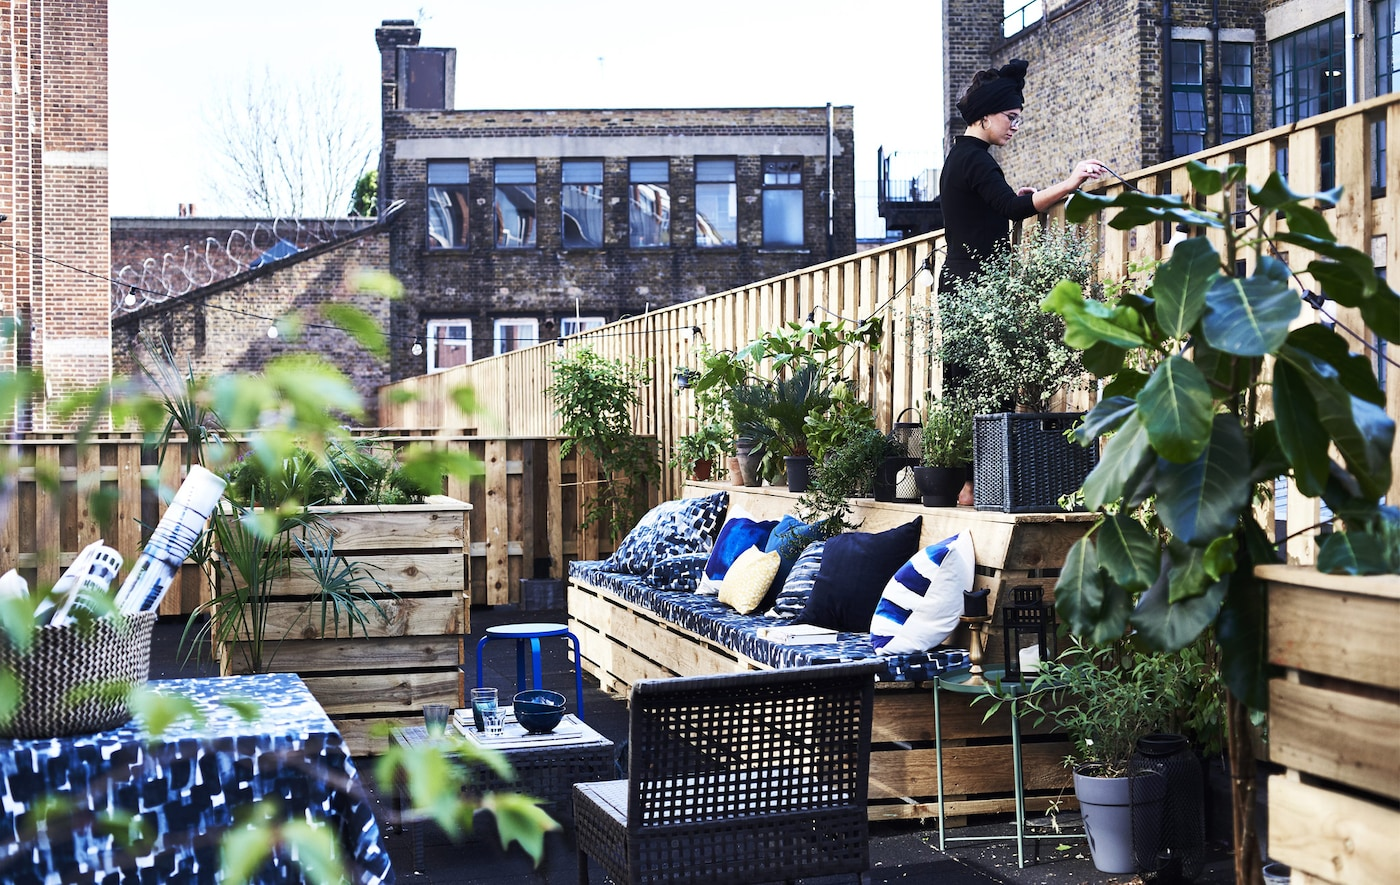 An outdoor terrace with textiles.